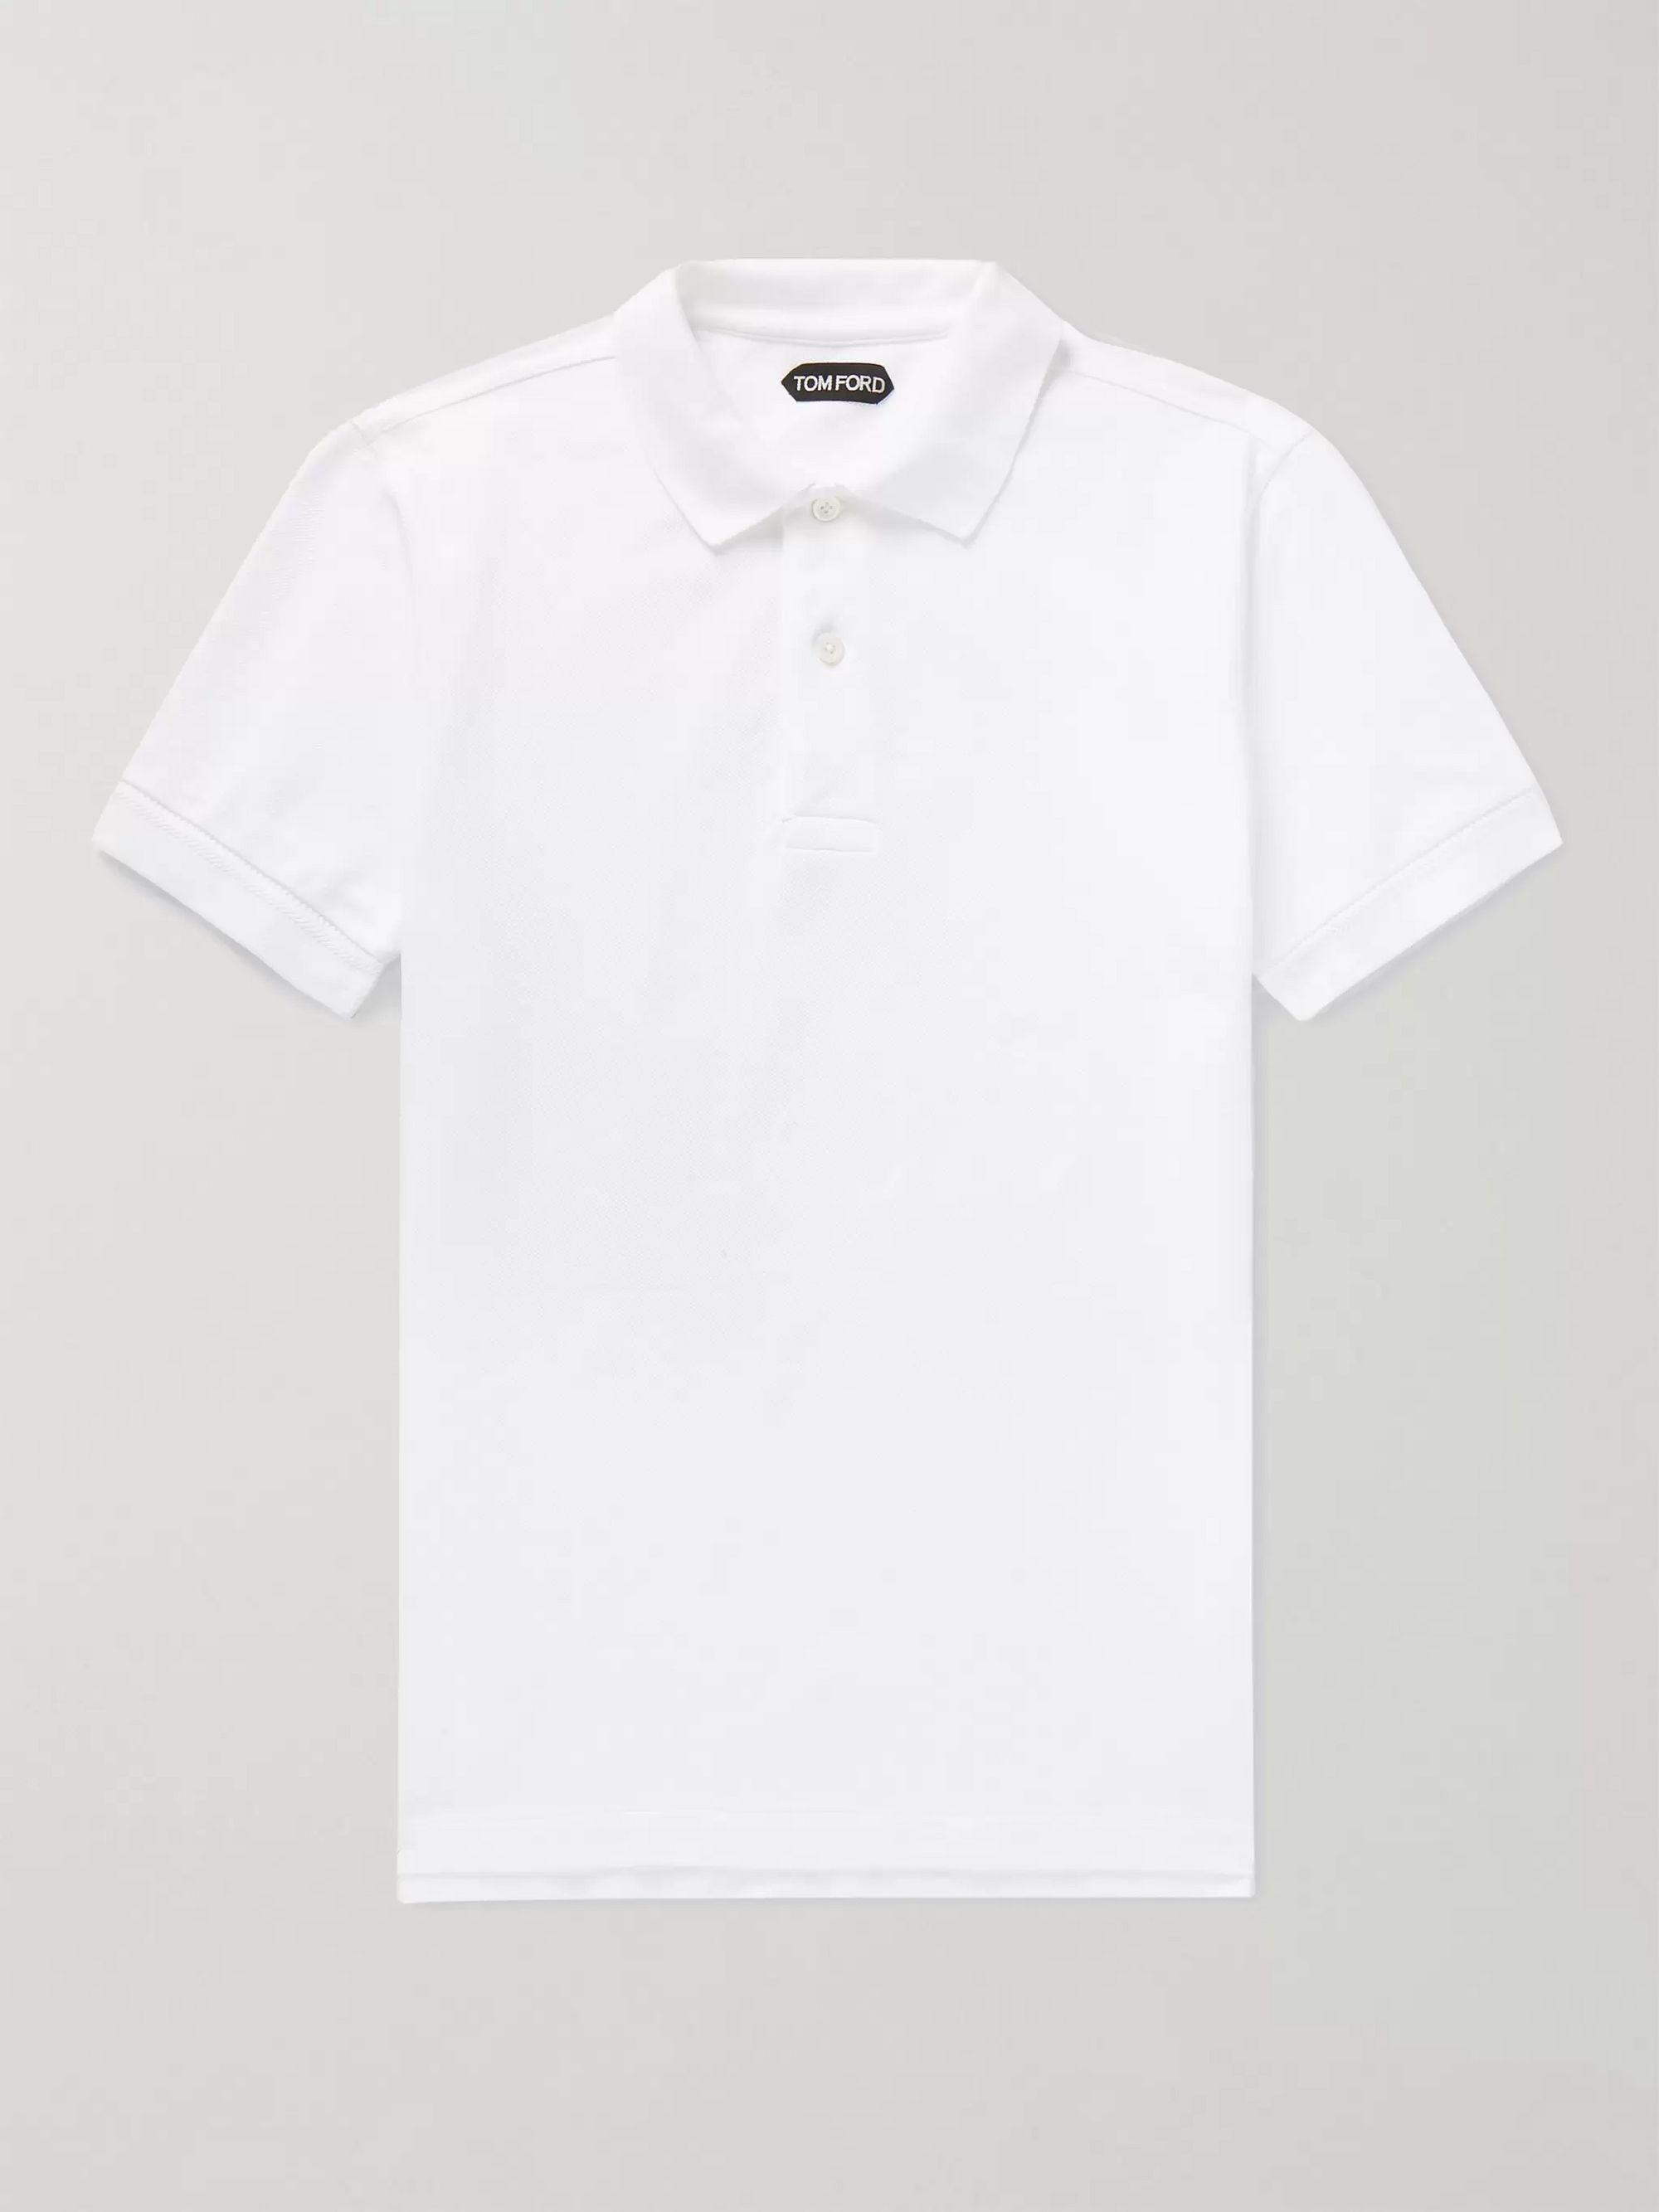 Tom Ford Polo Poloshirt Men/'s 54 white Cotton   Piqué